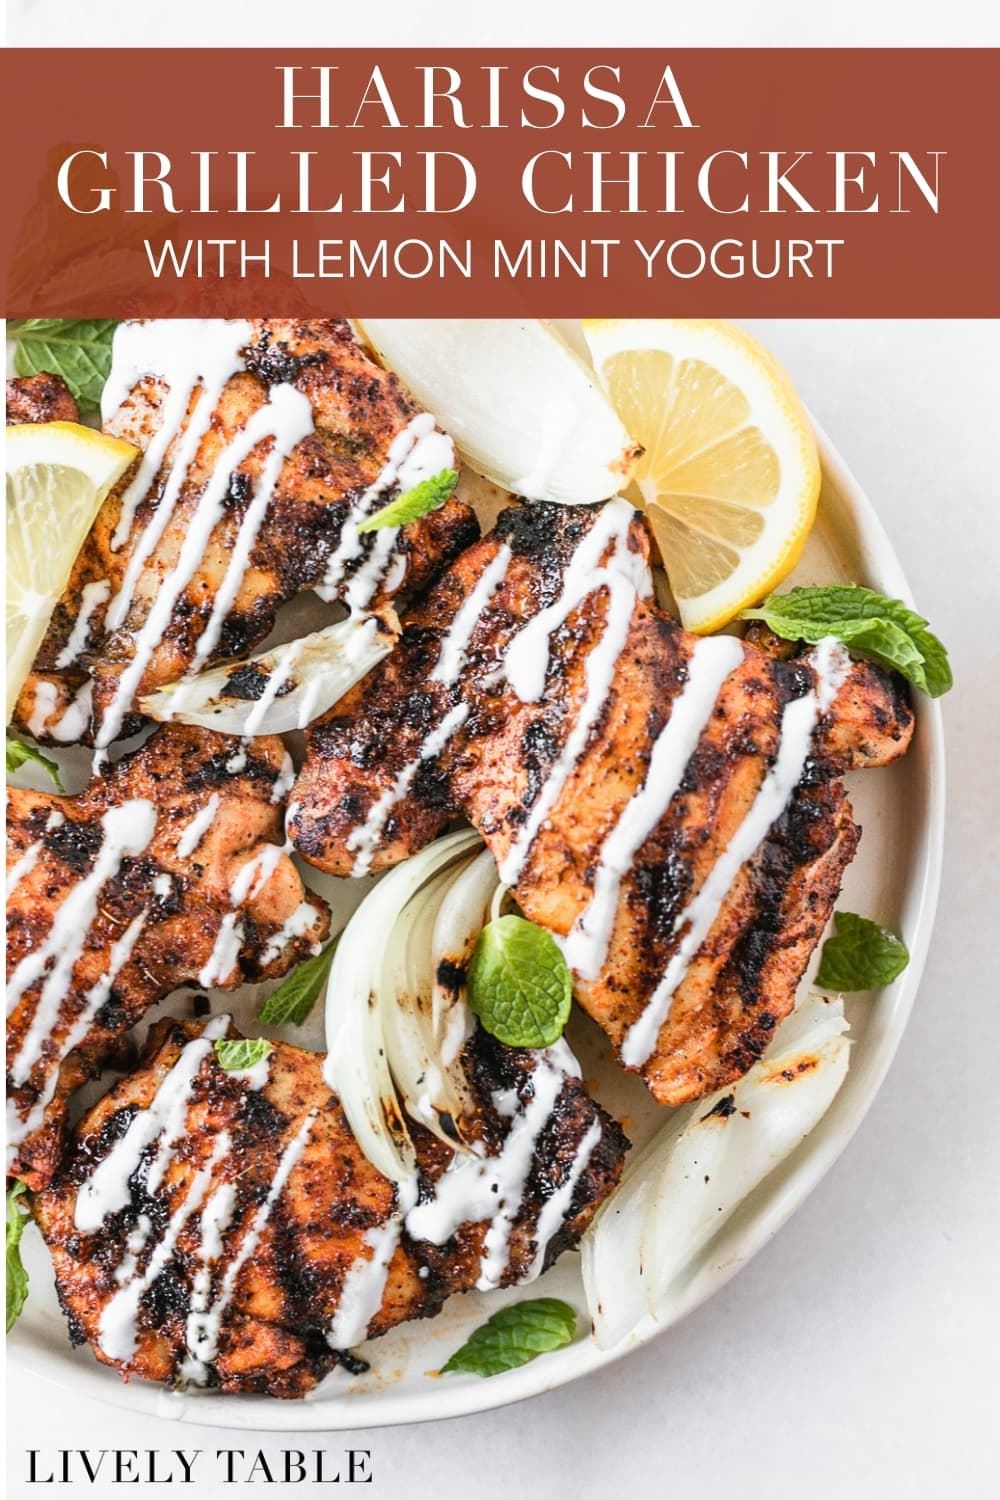 Spicy grilled harissa chicken thighs with a creamy lemon mint yogurt sauce made with just a few simple ingredients are an easy and delicious dinner option for busy weeknights. #glutenfree #nutfree #maindish #entree #healthy #grilling #easy #healthy